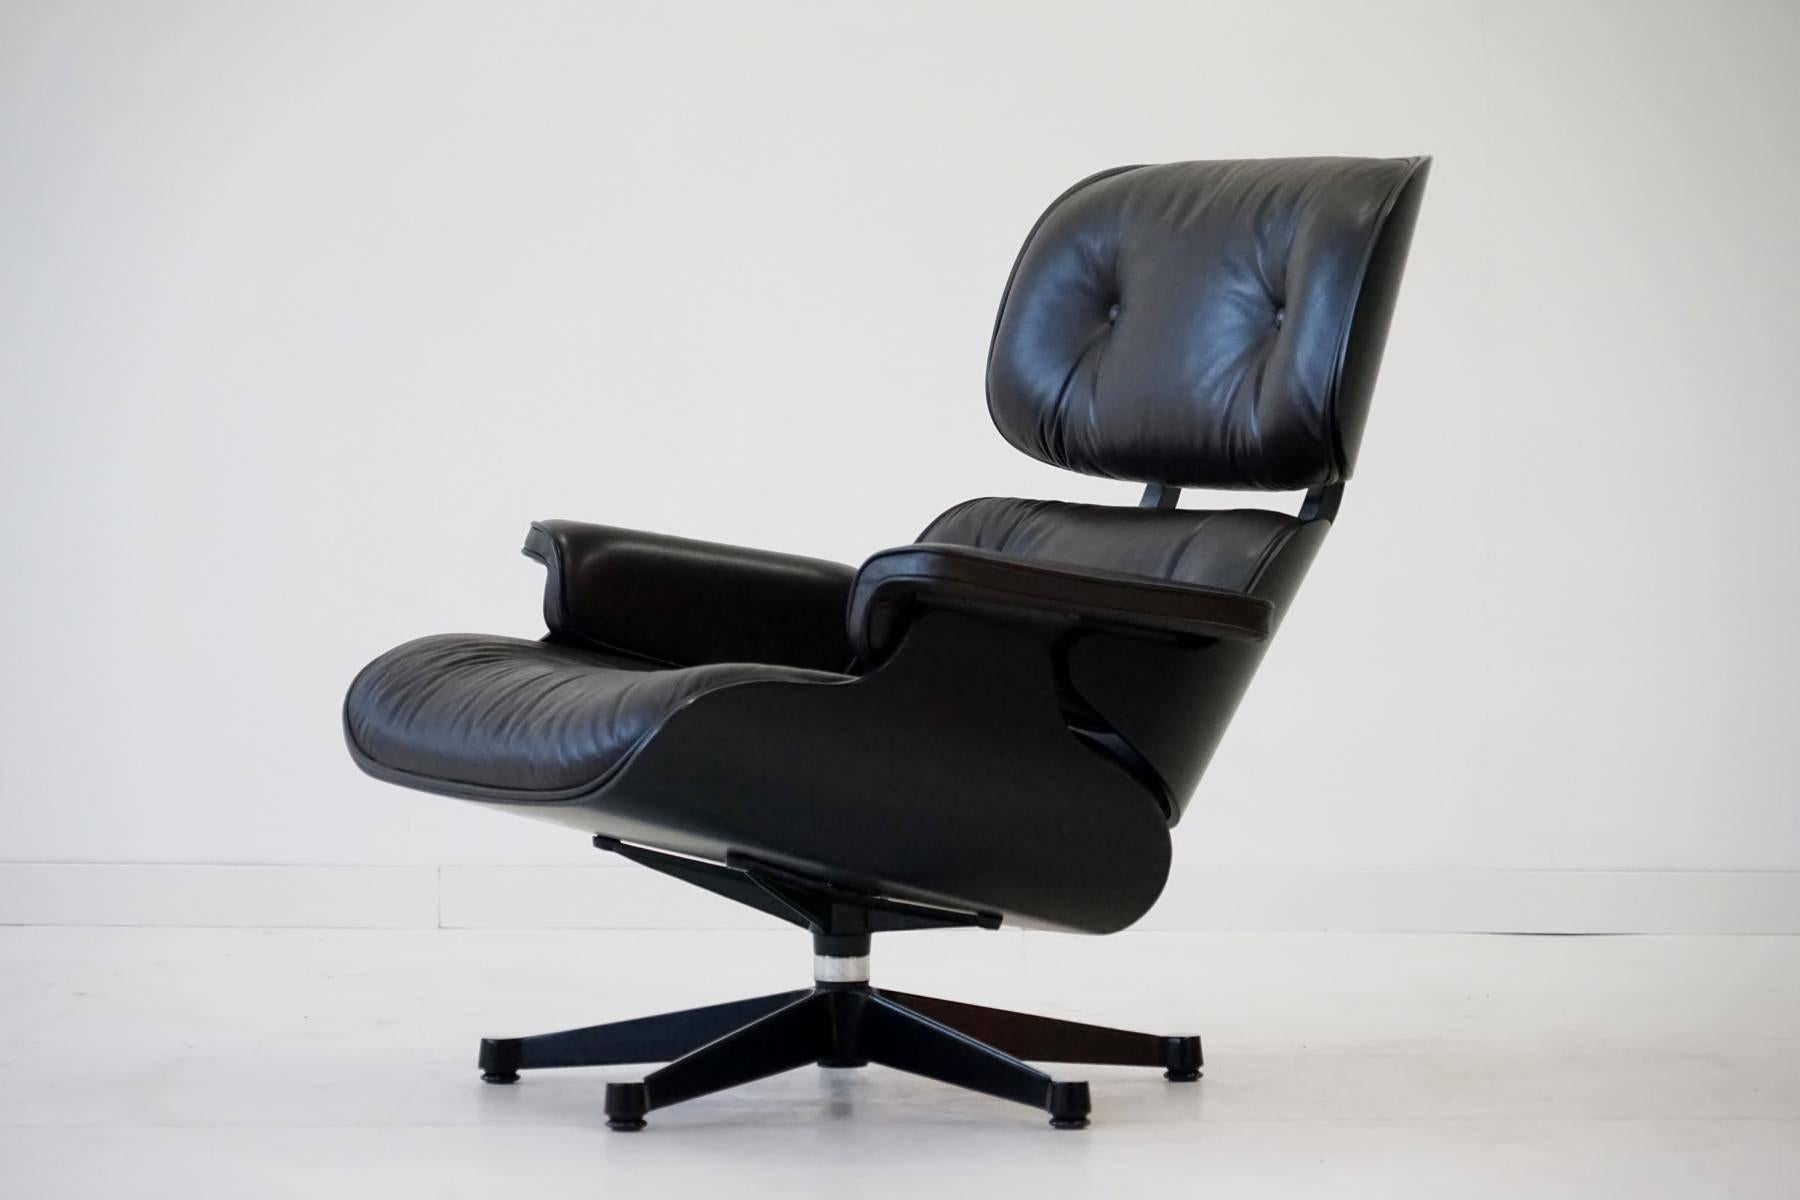 Original Lounge Chair By Charles Eames, Vitra, From Exhibition Since 1956,  The Lounge